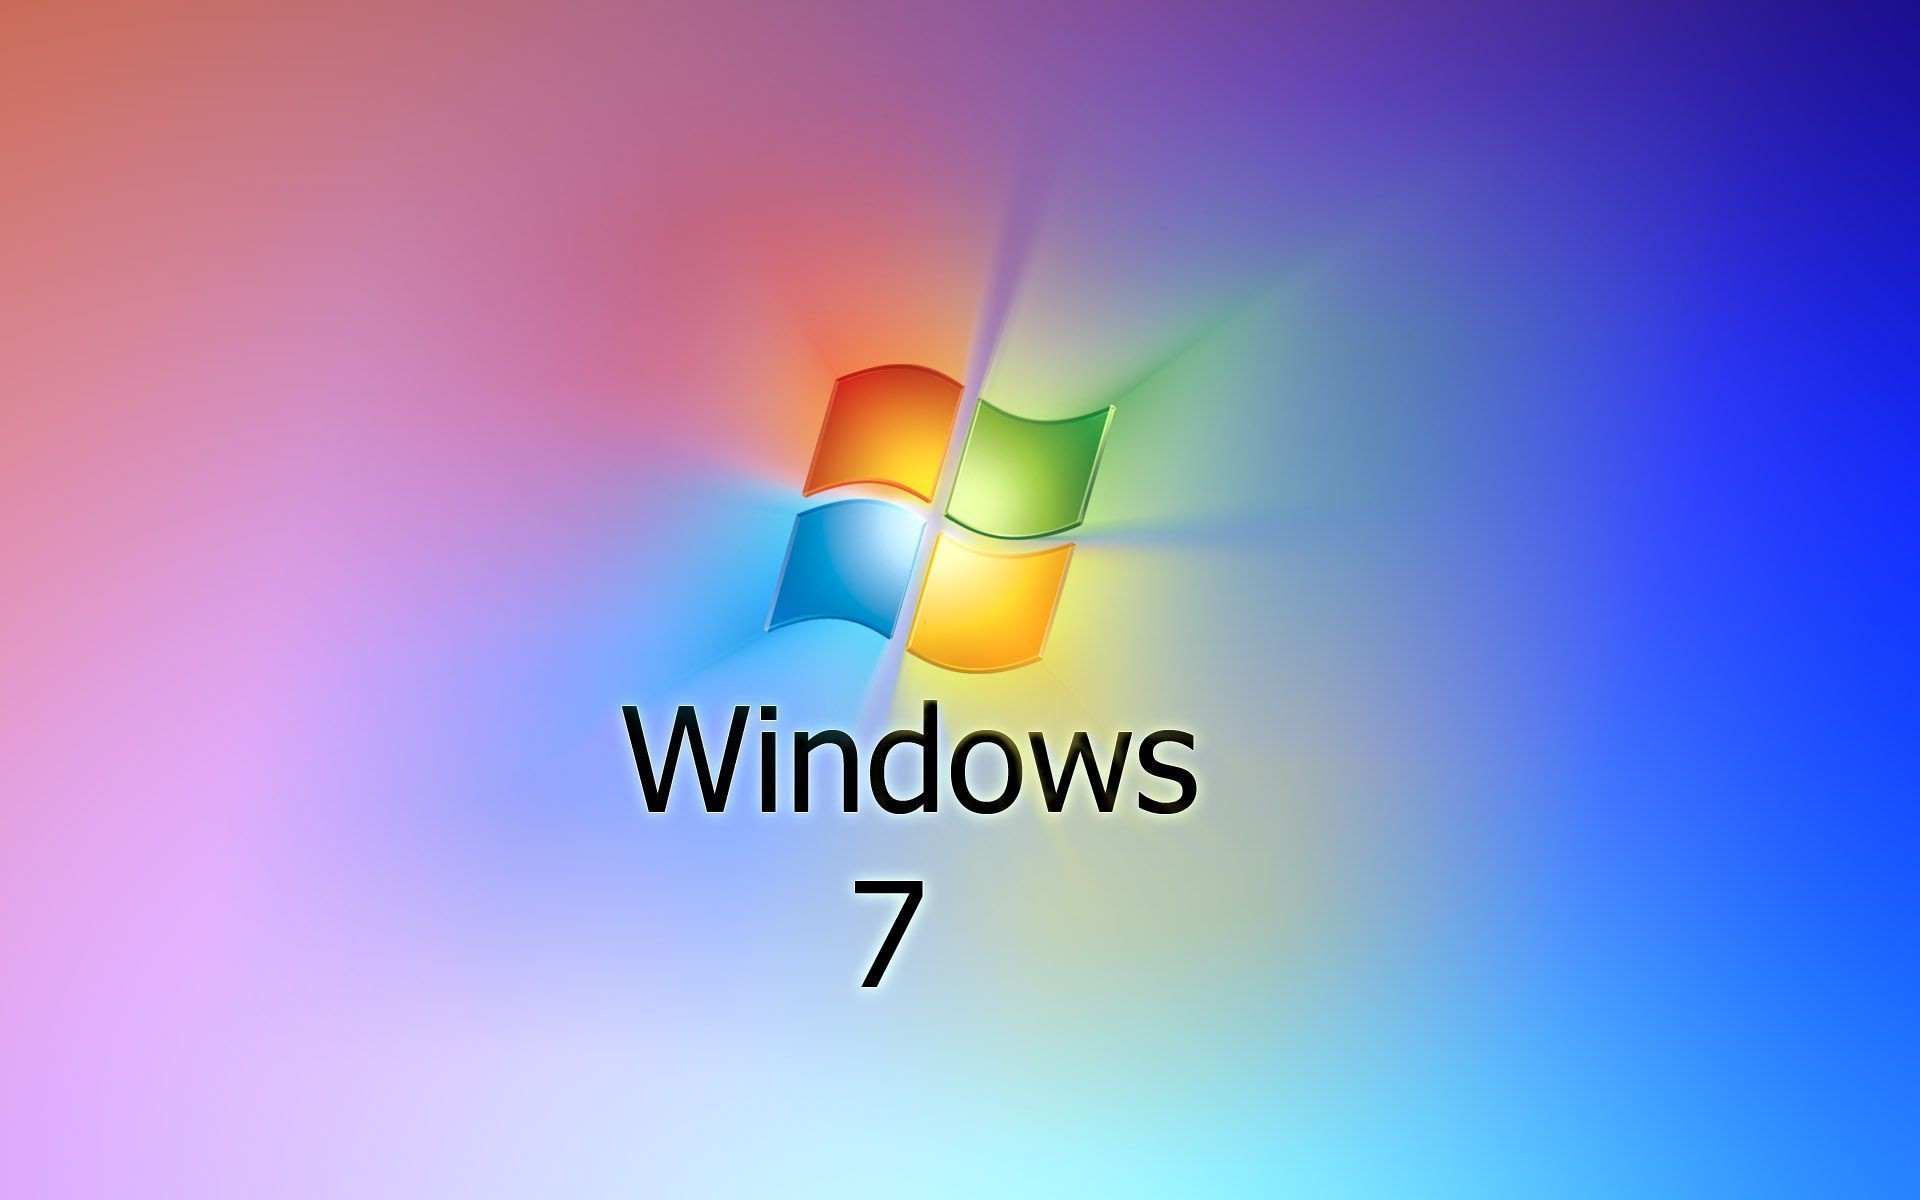 1920x1200 windows ultimate wallpaper desktop 7177poster.jpg